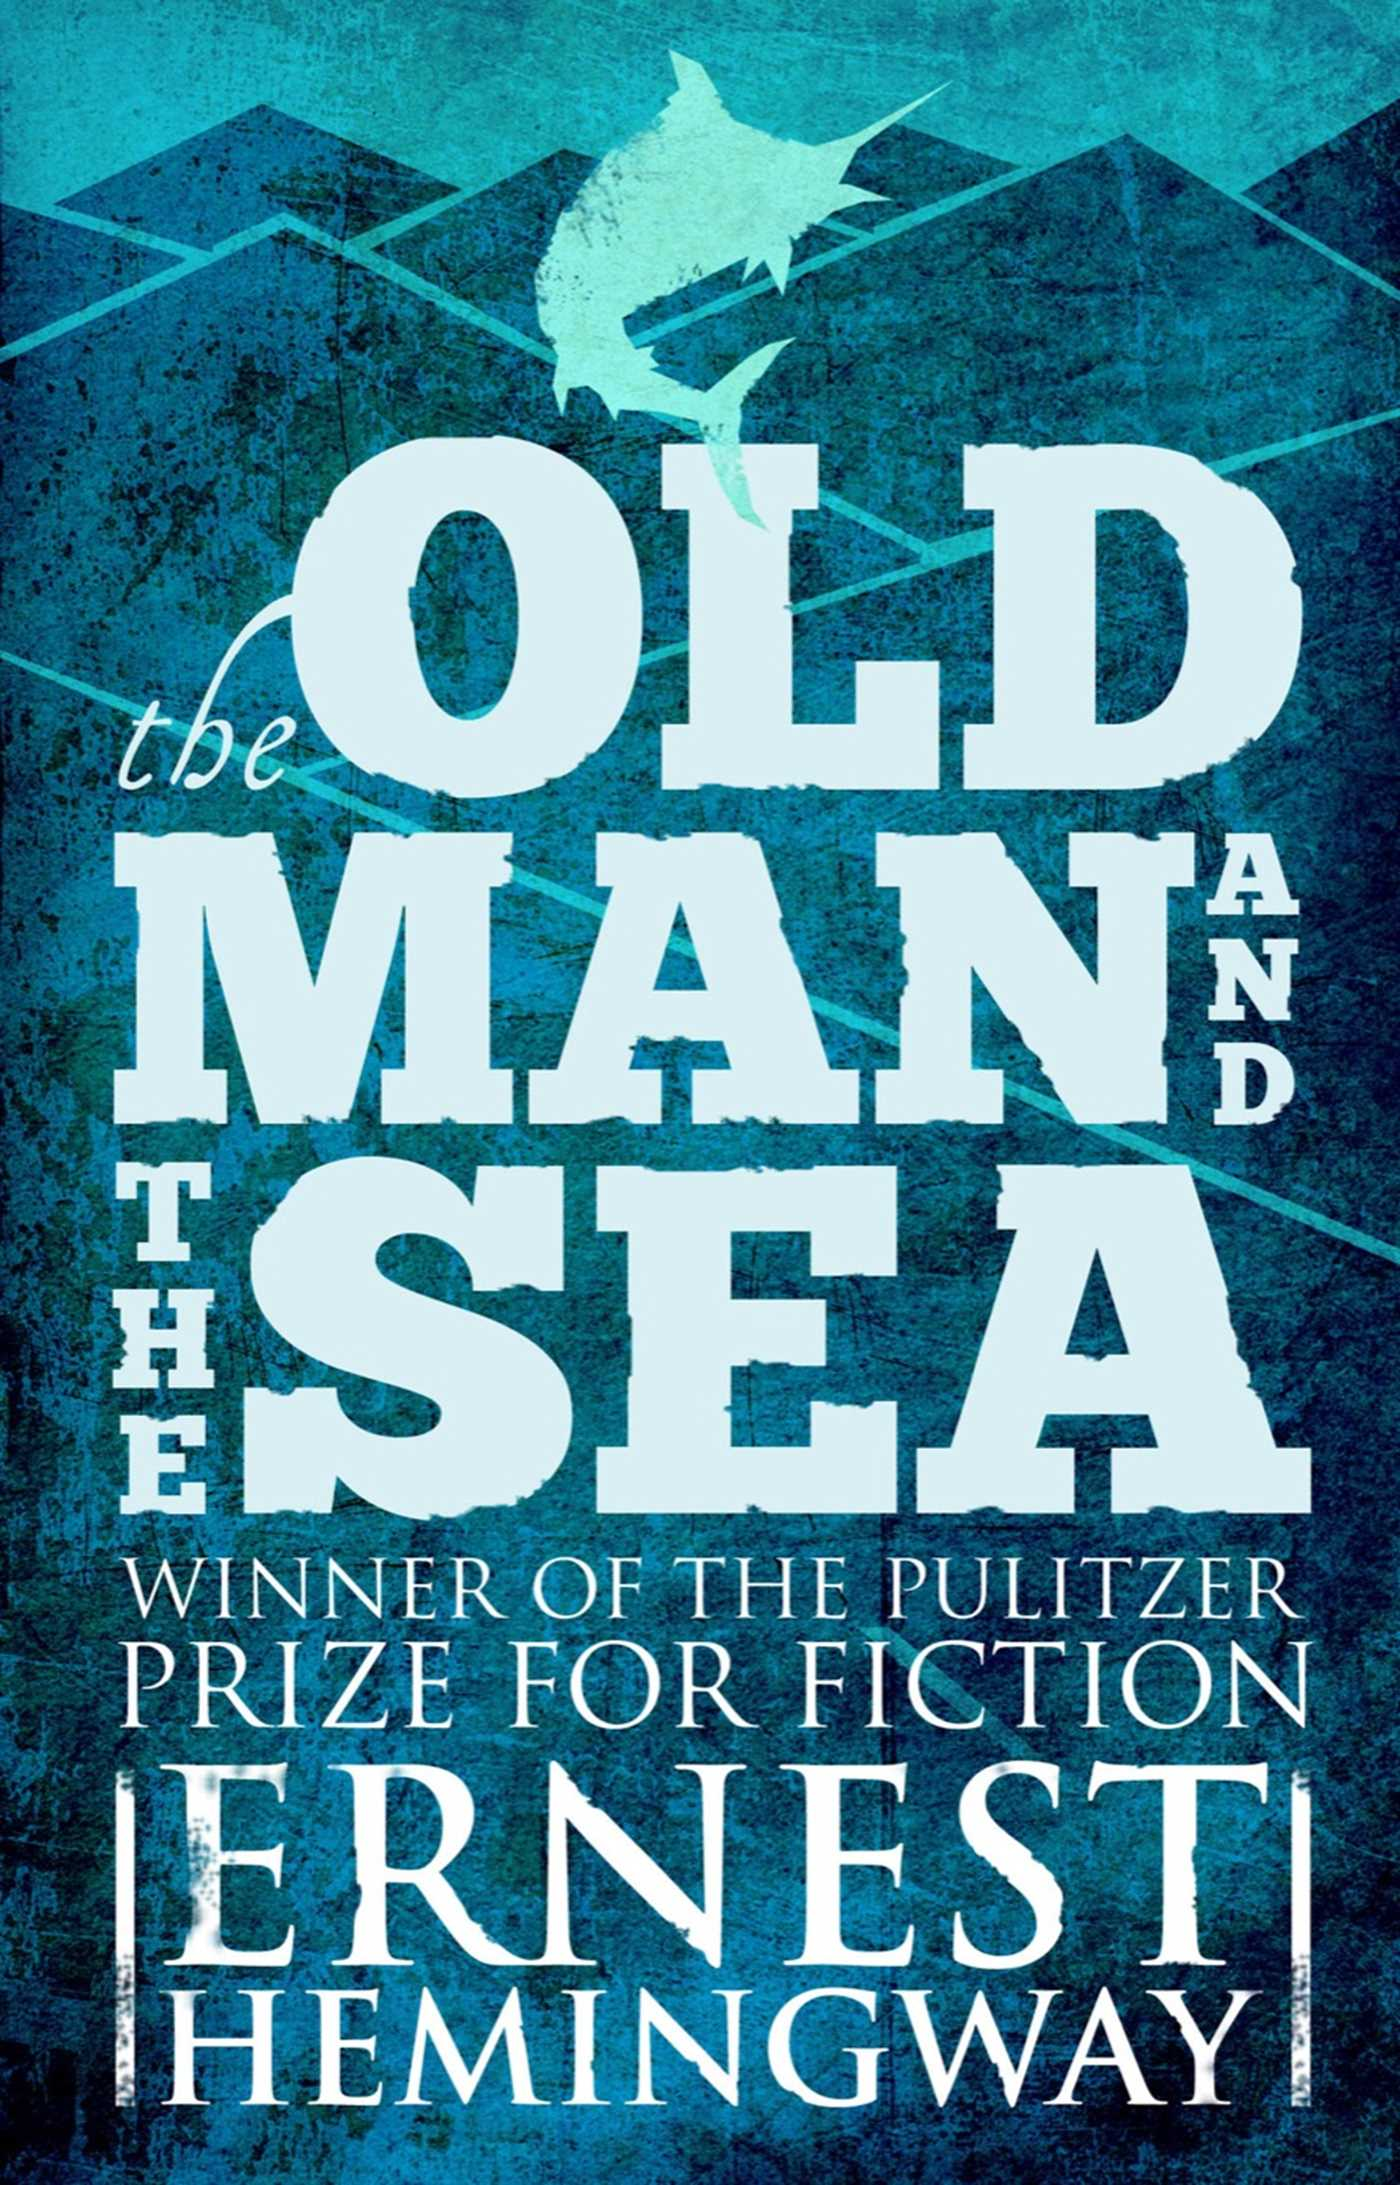 the biblical allusions in the old man and the sea a novel by ernest hemingway The old man and the sea by: ernest hemingway the old man in the sea is an allegory biblical allusions abound.